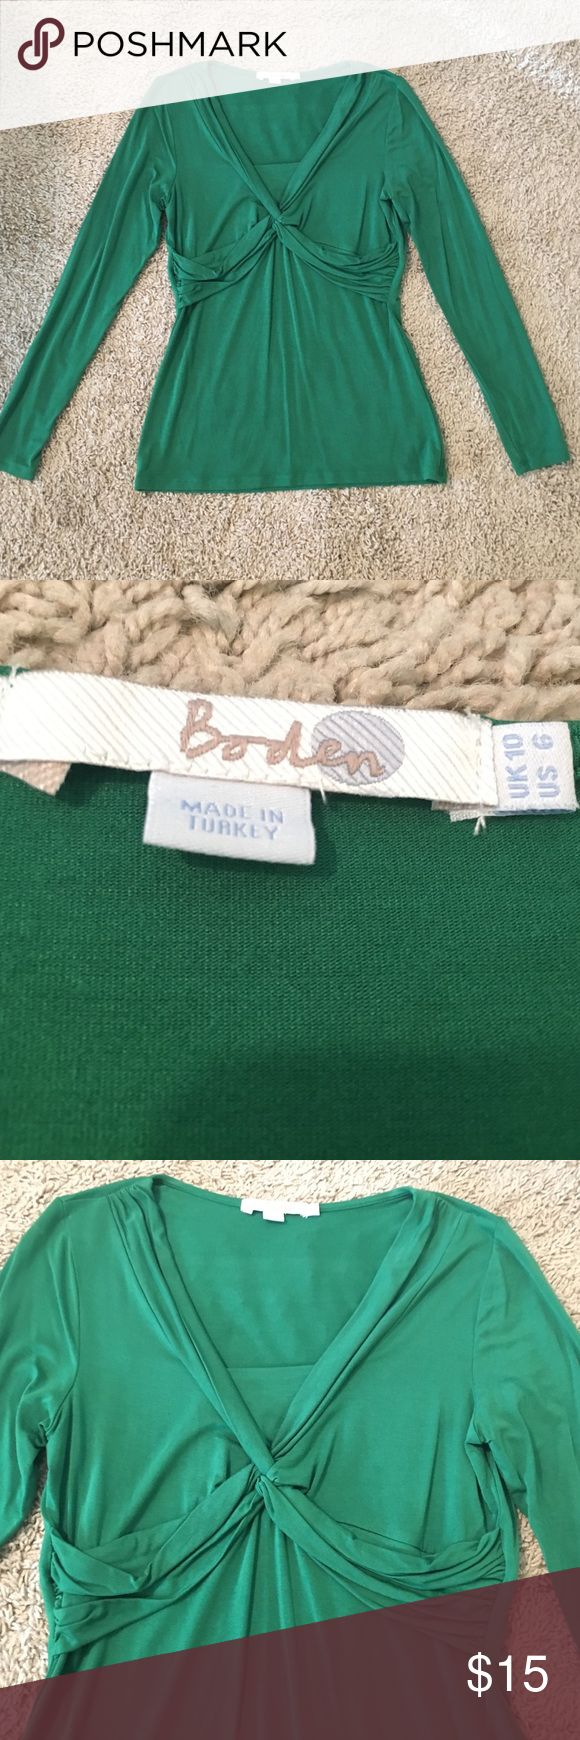 Boden long sleeve green top 6 Boden green long sleeve top. Size 6. Good condition. Boden Tops